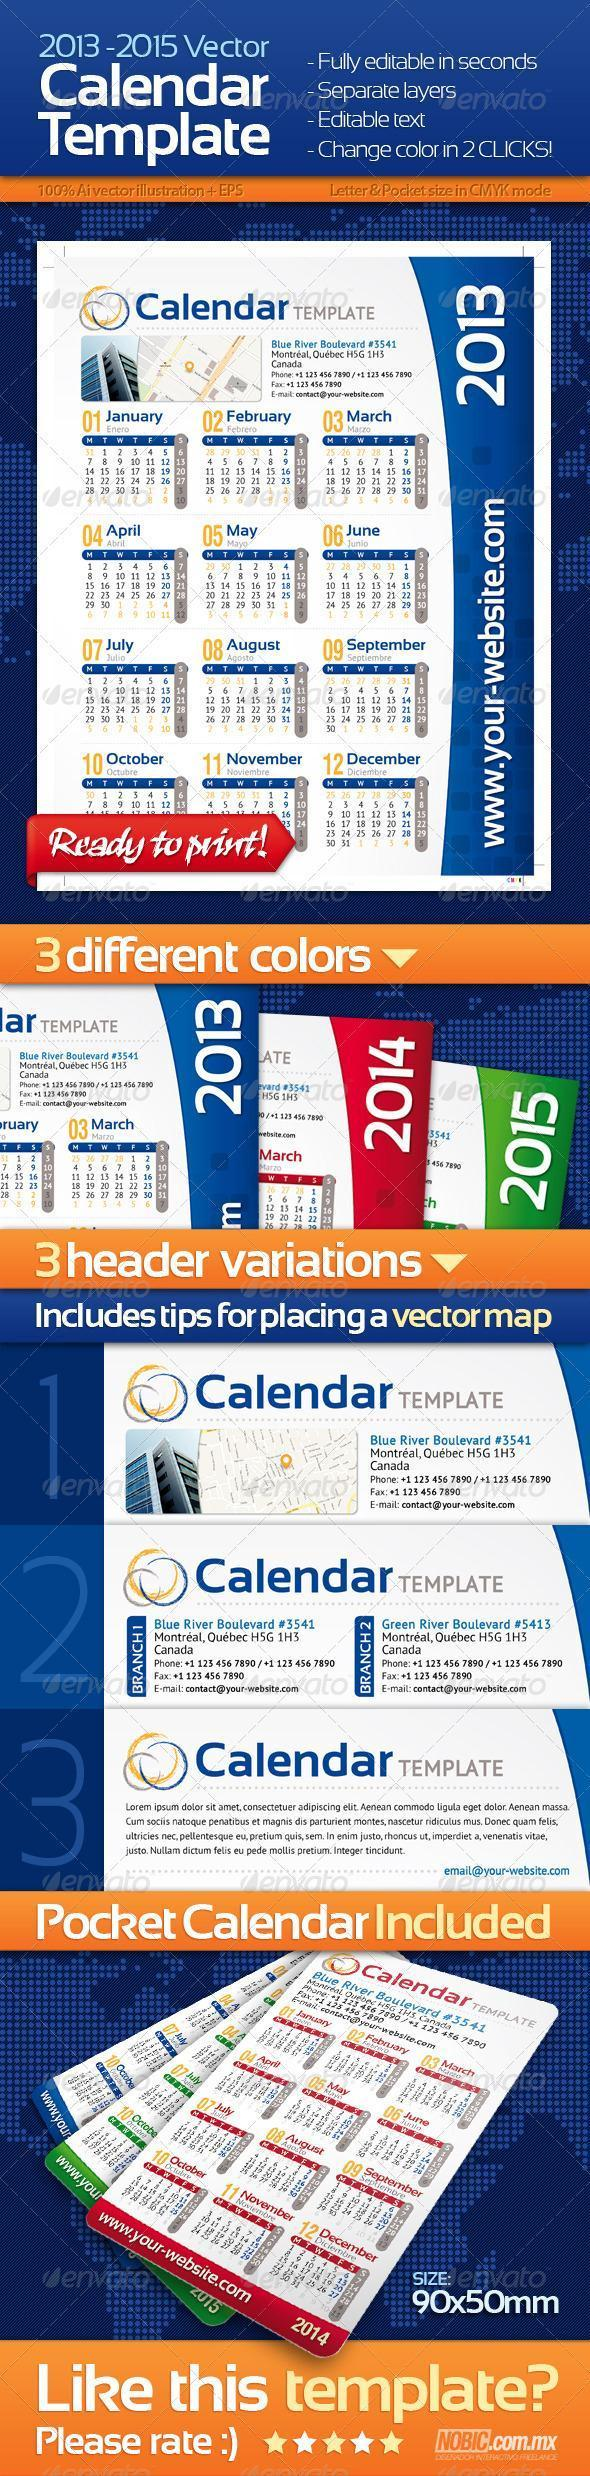 Pocket Calendar for 2013